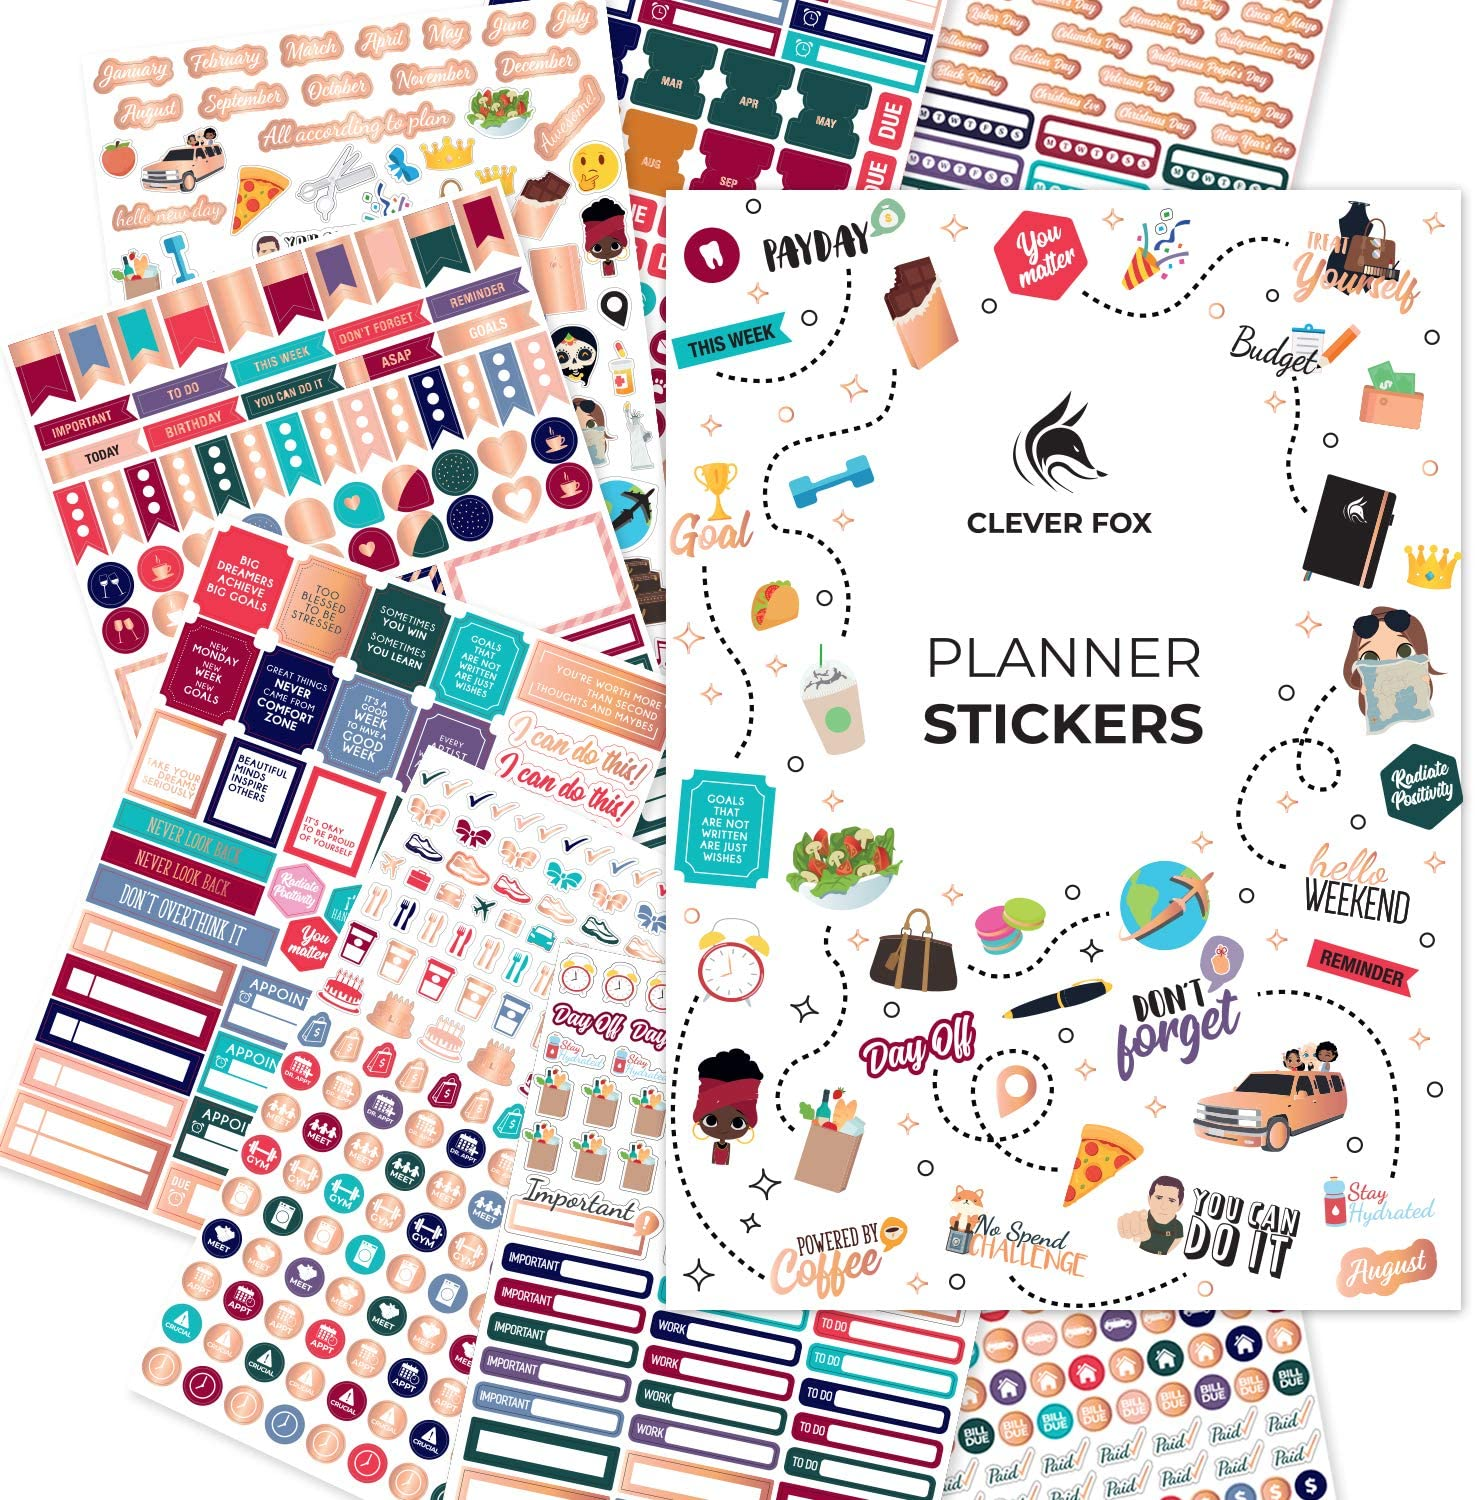 Clever Fox Planner Stickers - Monthly, Weekly & Daily Planner Stickers 14 Sheets Set of 1360+ Unique Stickers by Clever Fox (Value Pack)